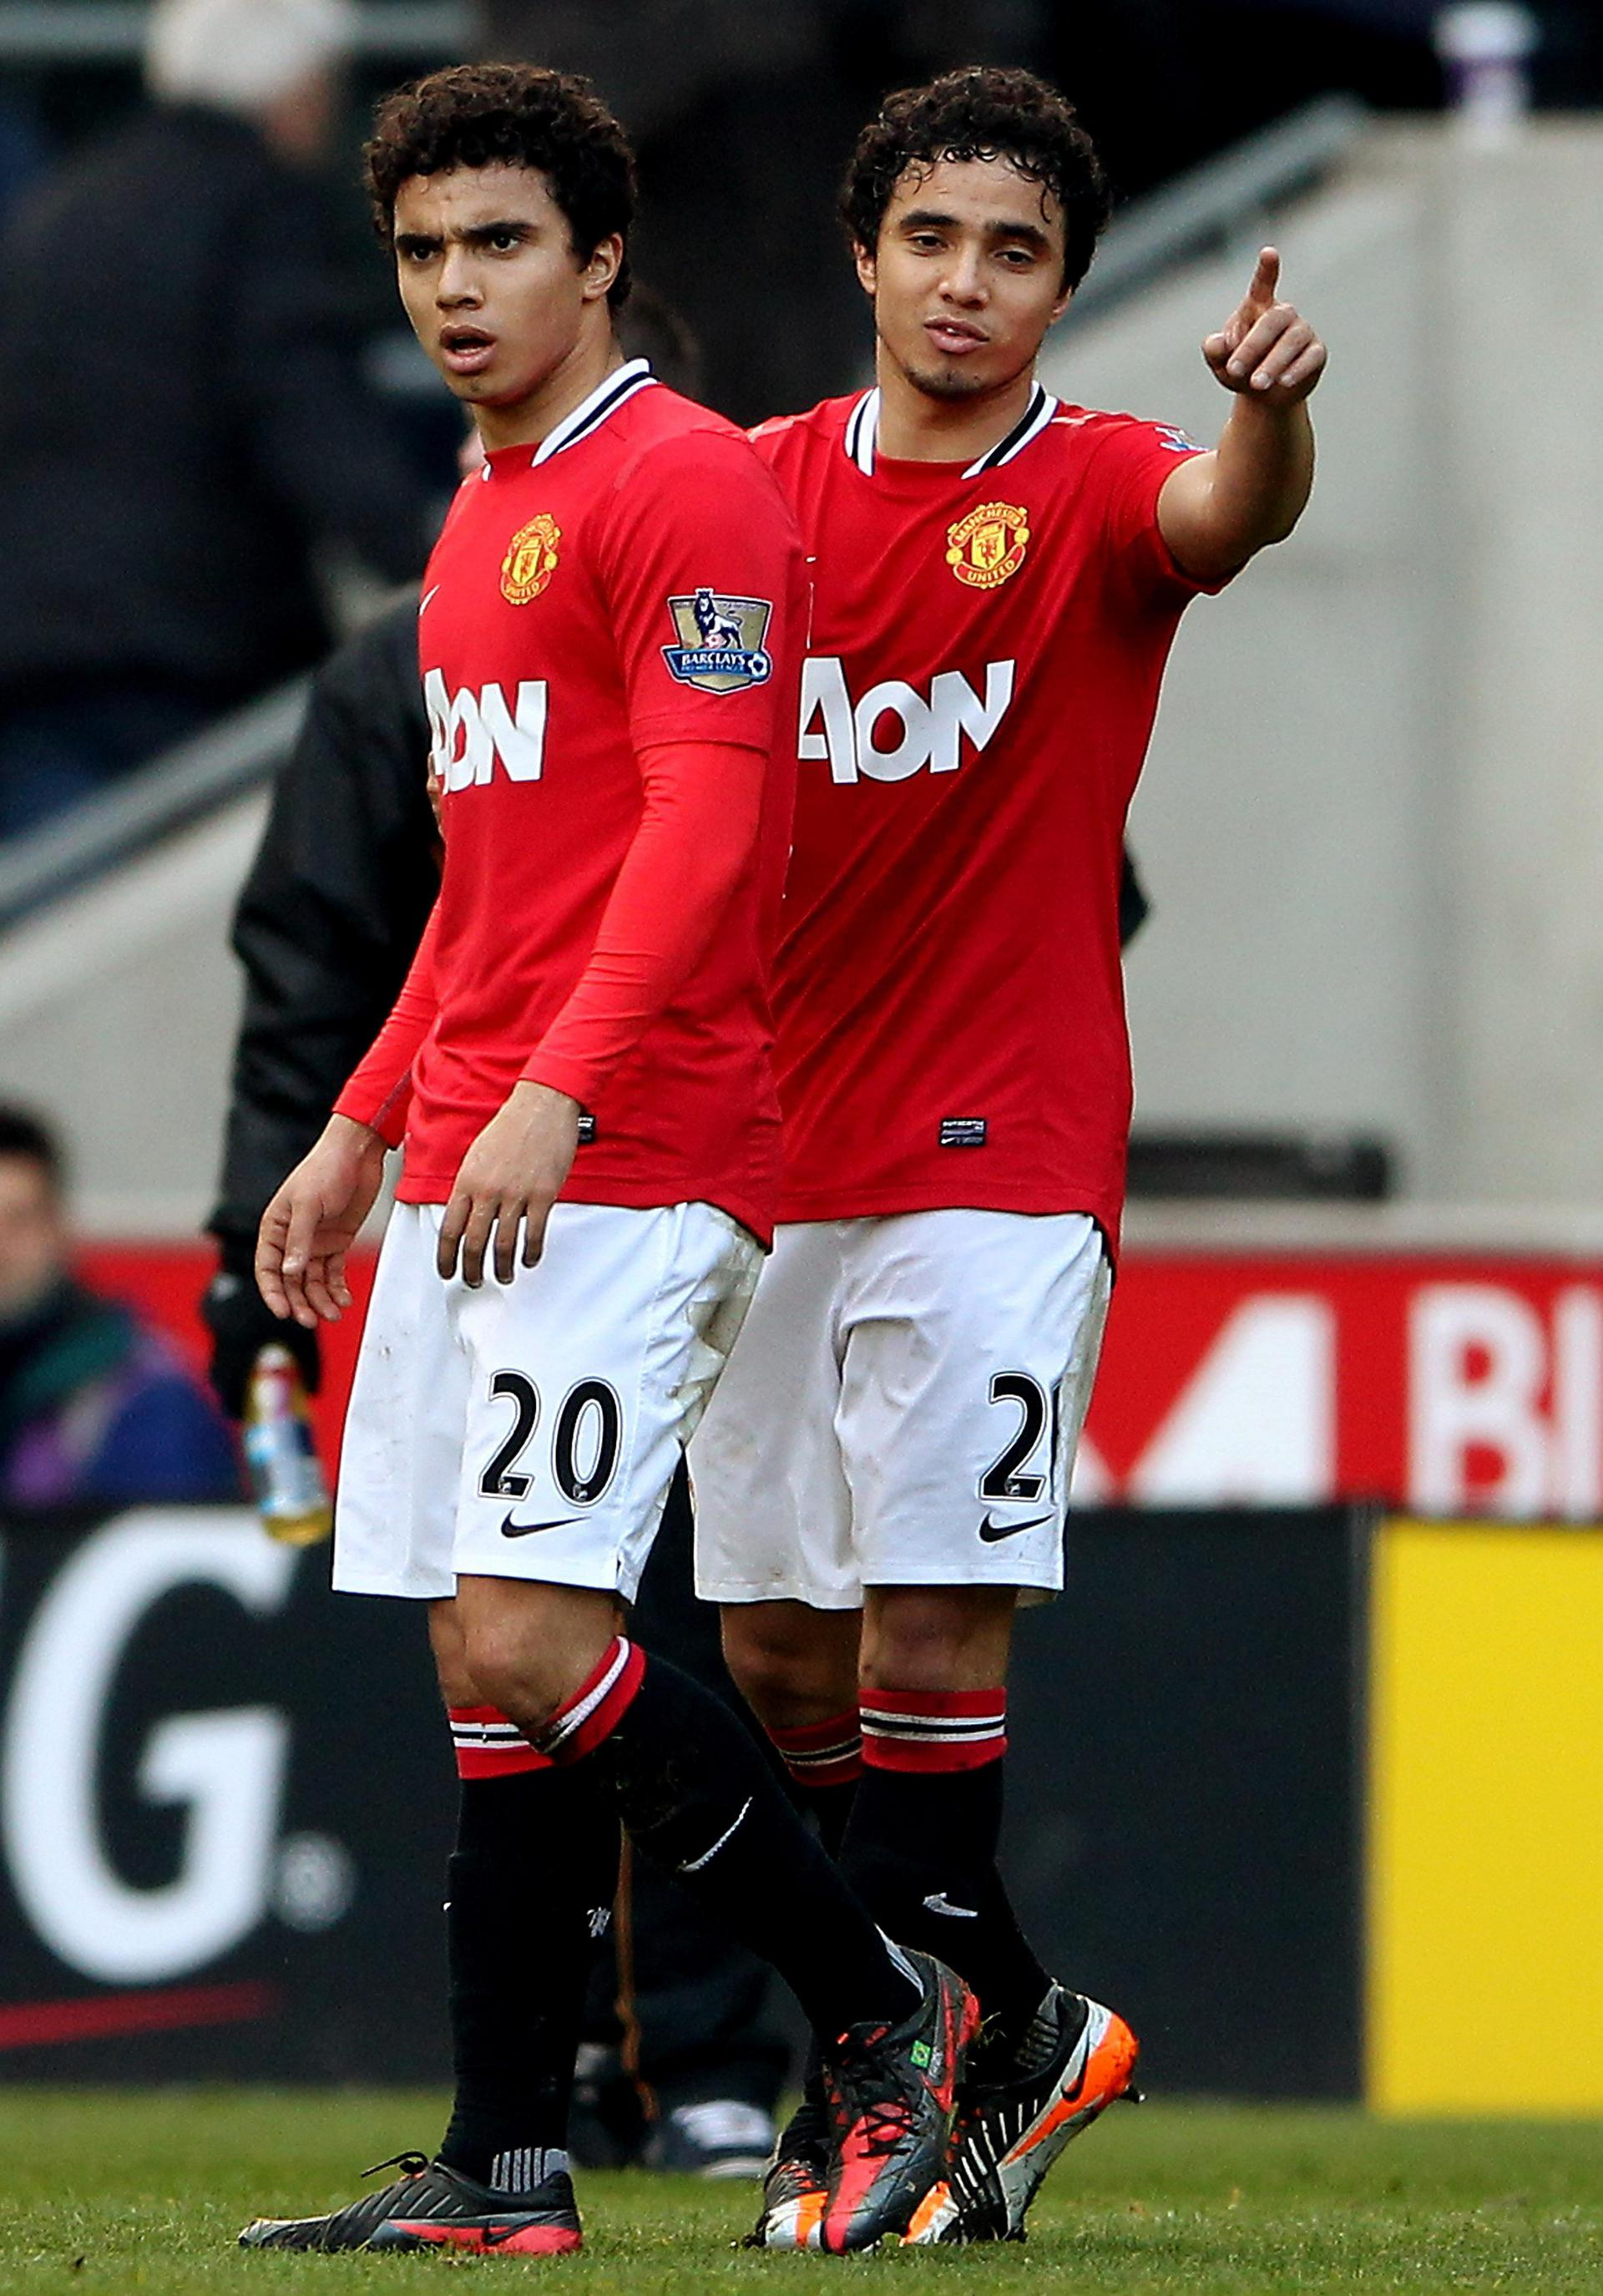 Rafael and Fabio da Silva for Manchester United.